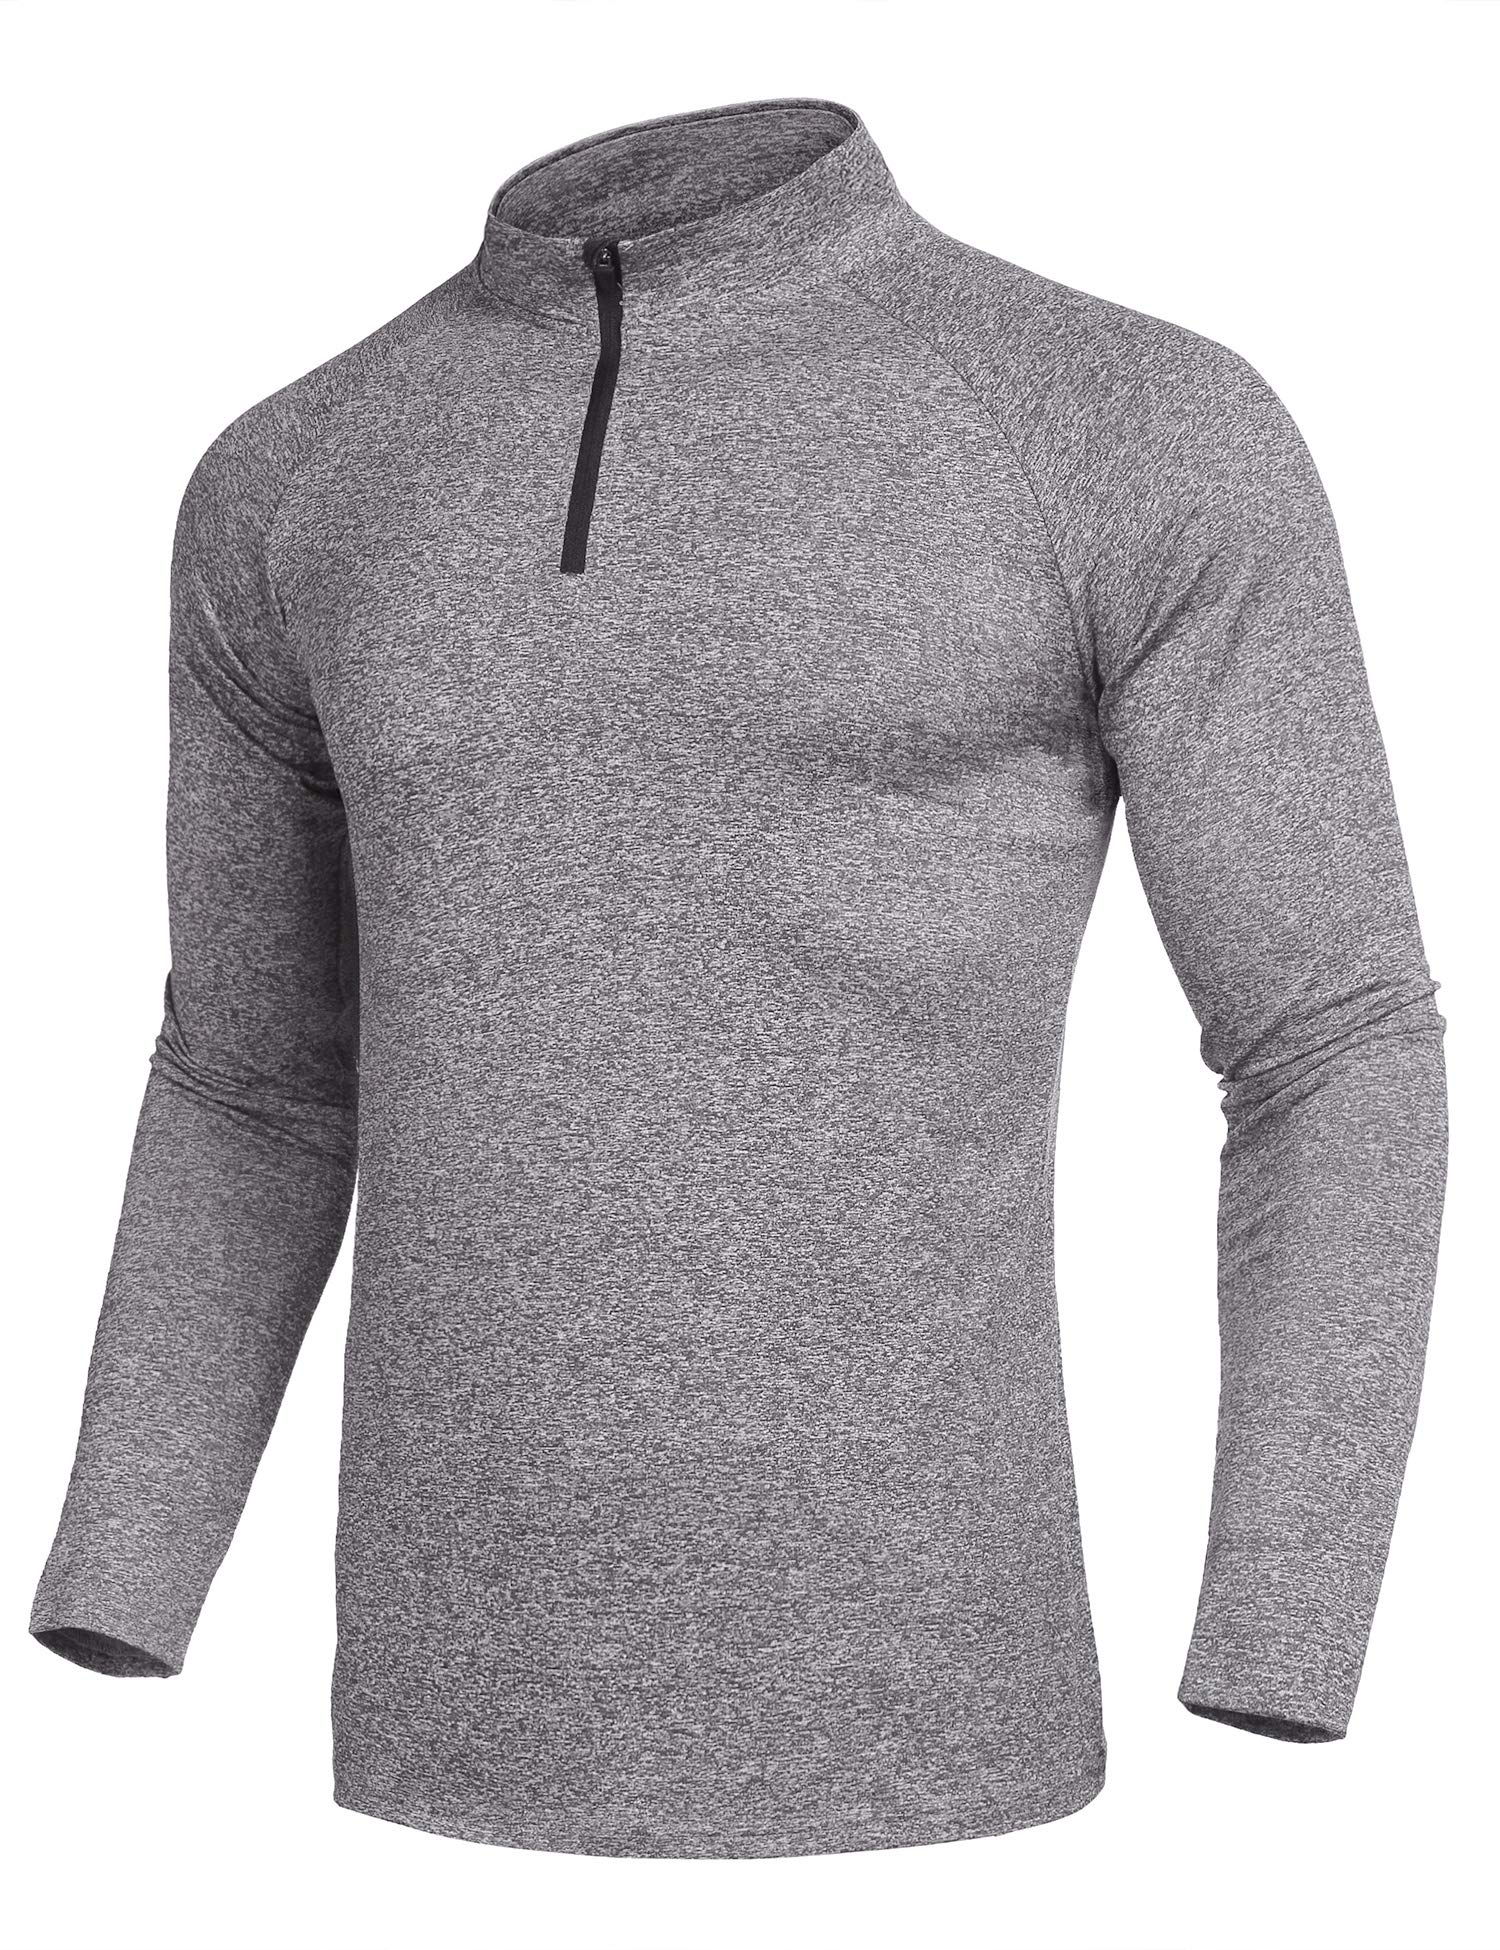 JINIDU Men 1/4 Zip Base Layer Fit Sports T-Shirts Jersey Pullover Shirt Spring by JINIDU